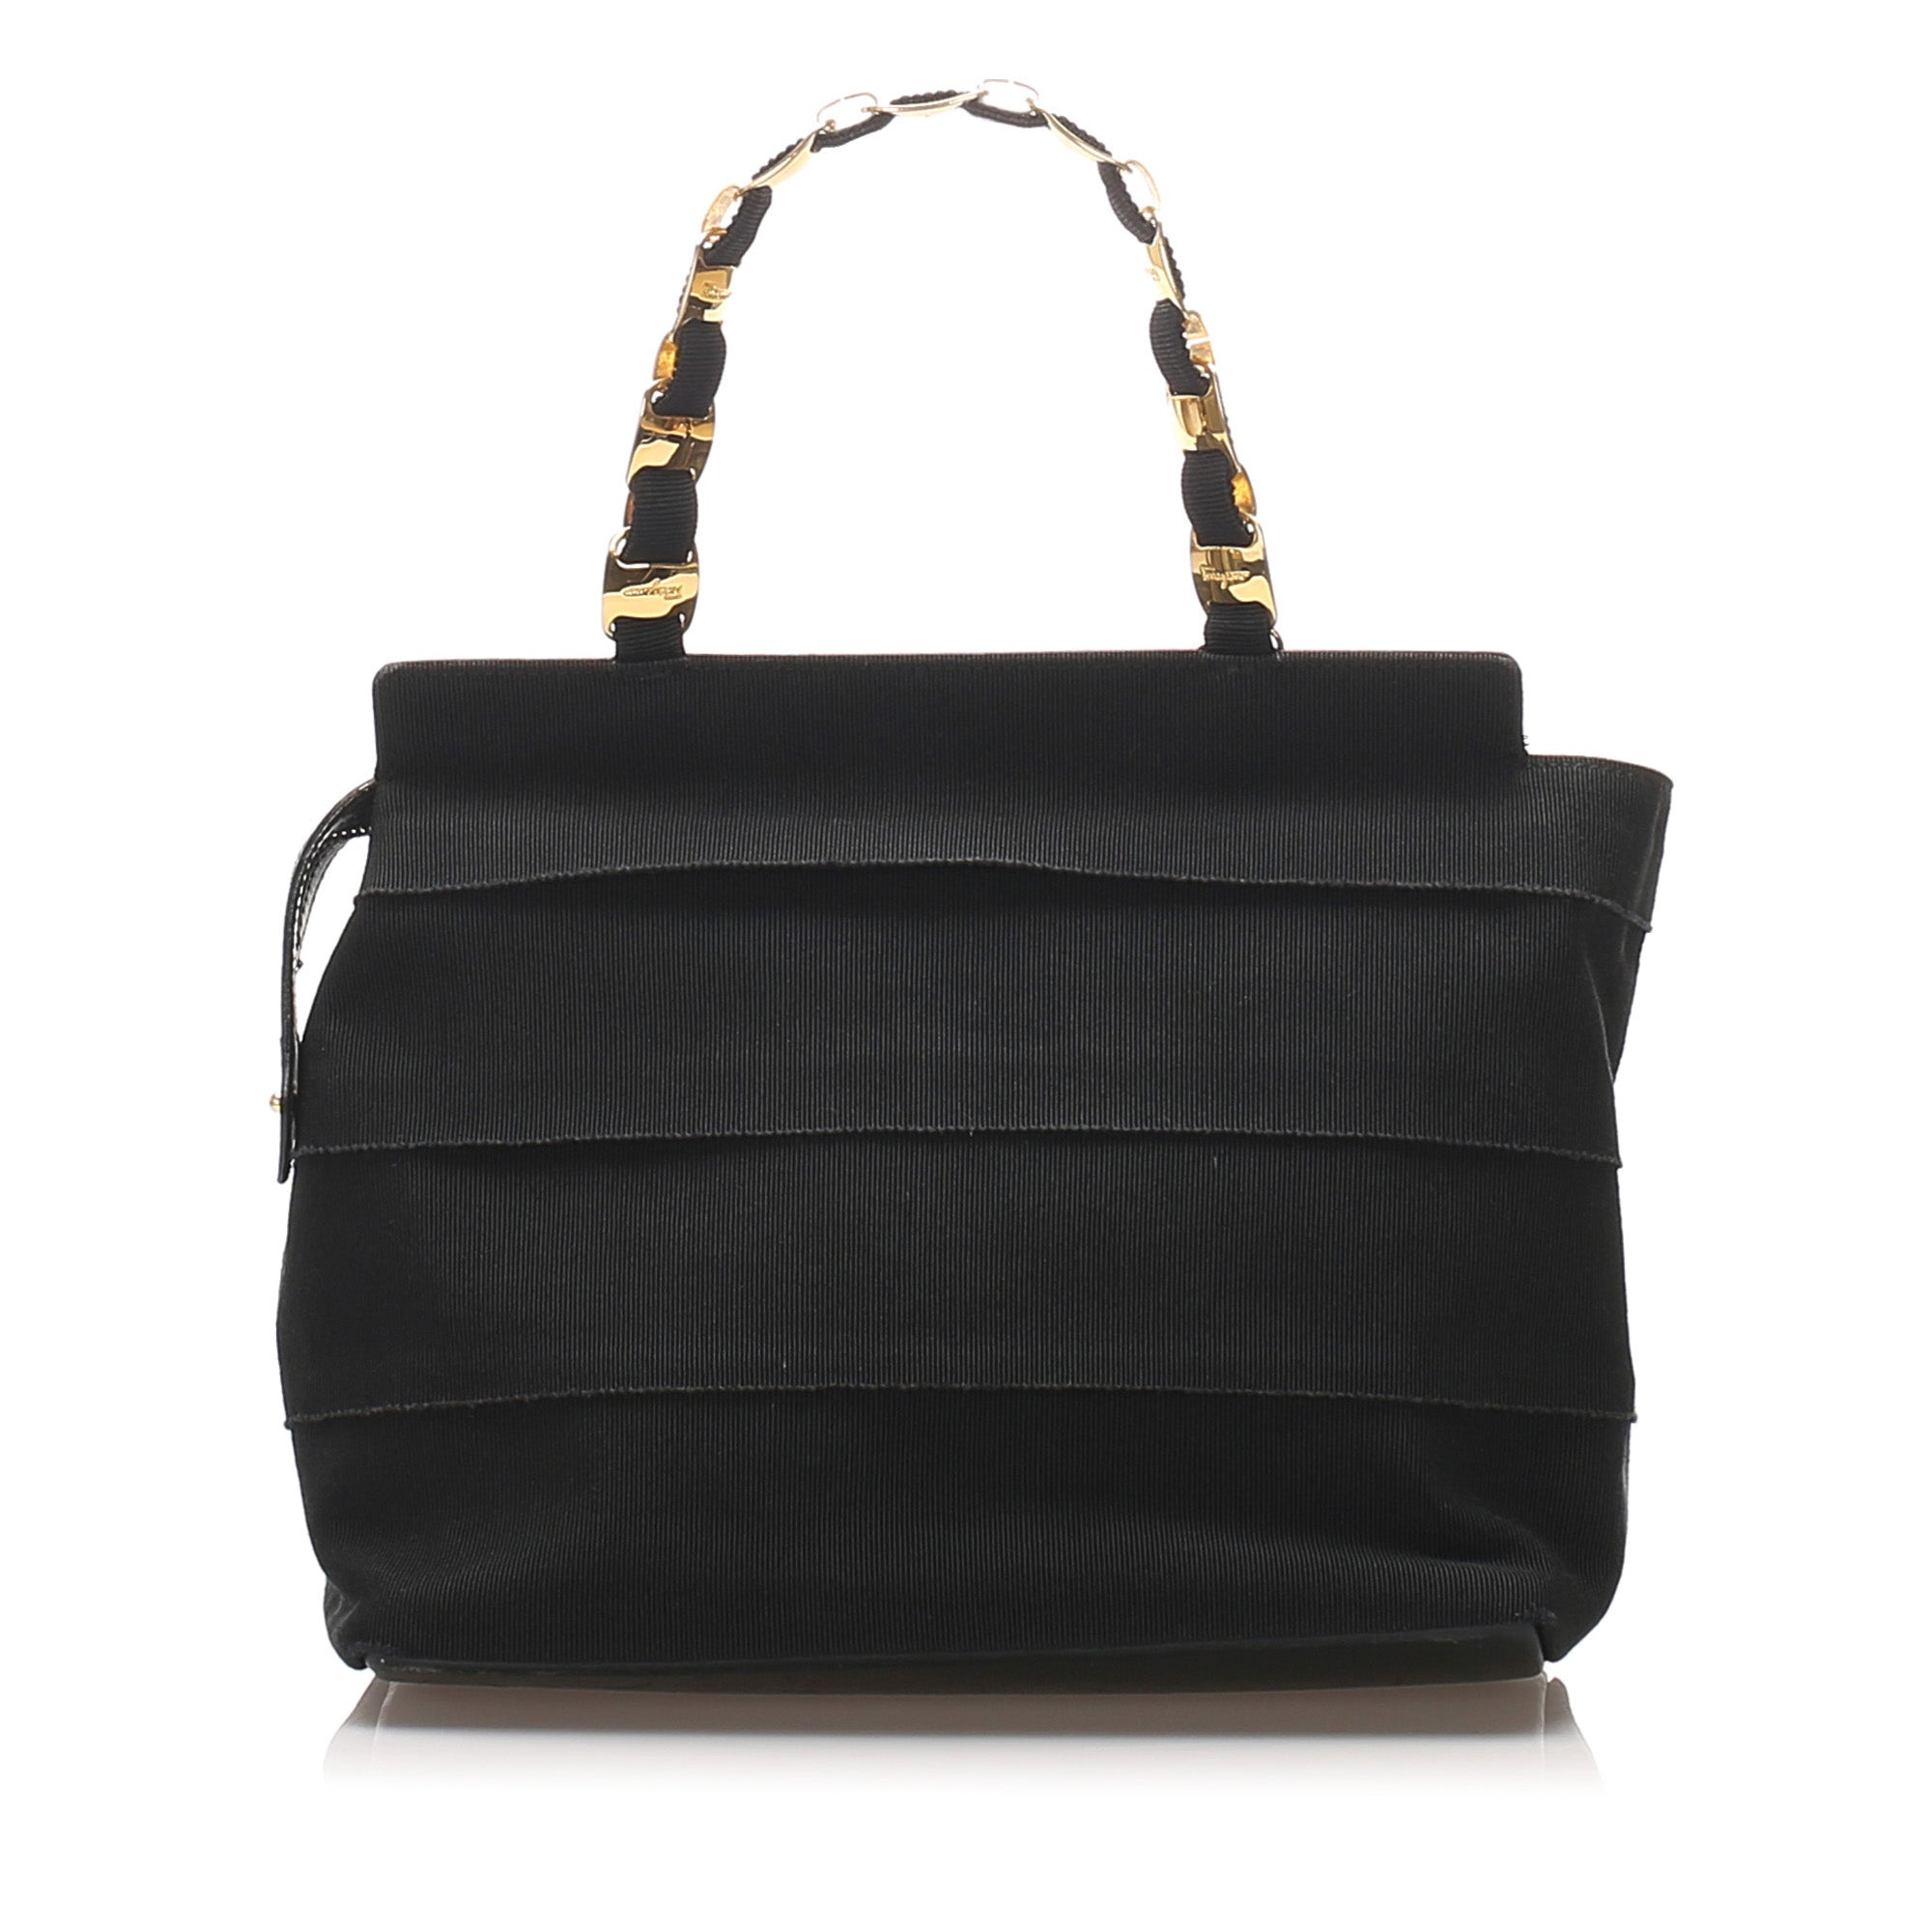 Ferragamo Black Tiered Grosgrain Chain Tote Bag